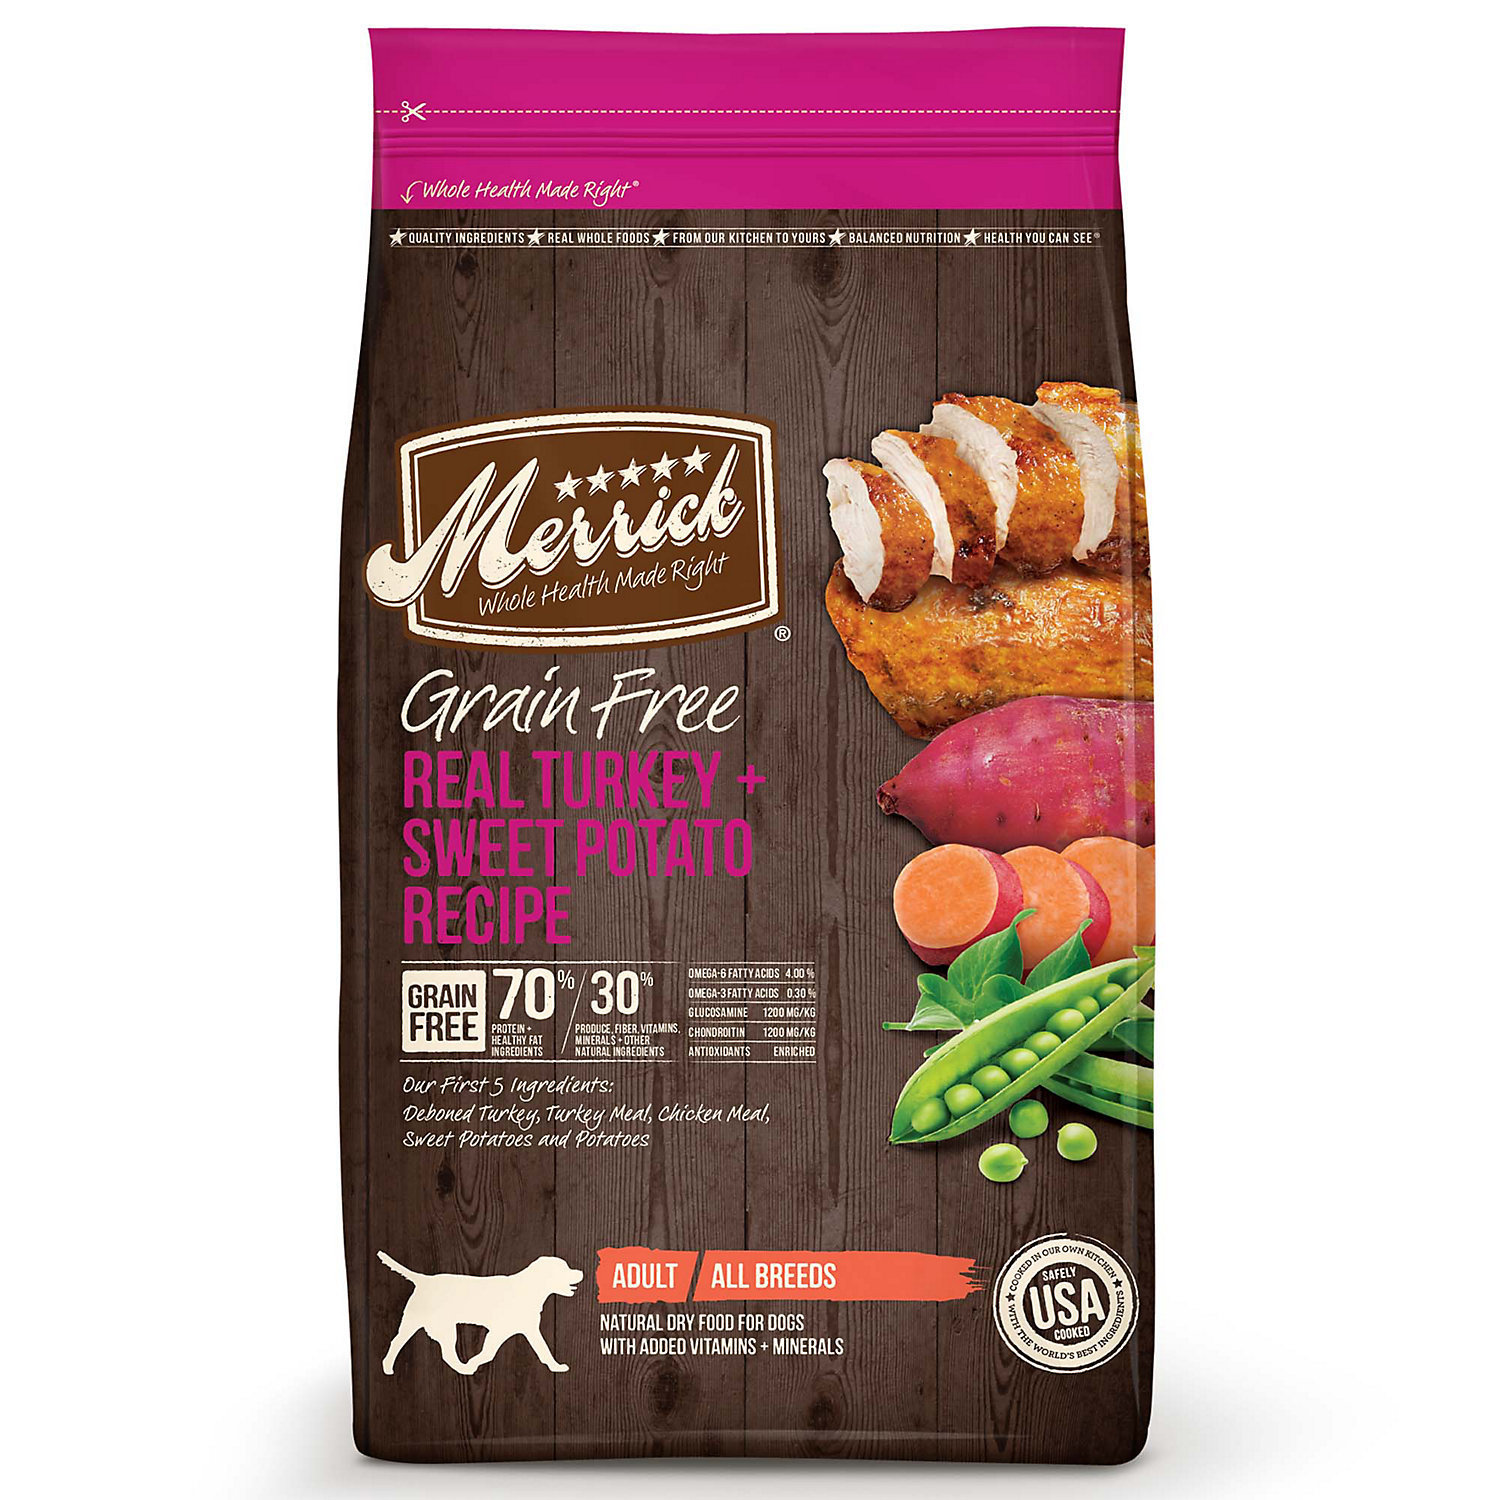 Merrick Grain Free Real Turkey & Sweet Potato Dry Dog Food, 4 lbs. (1/19) (A.J1)